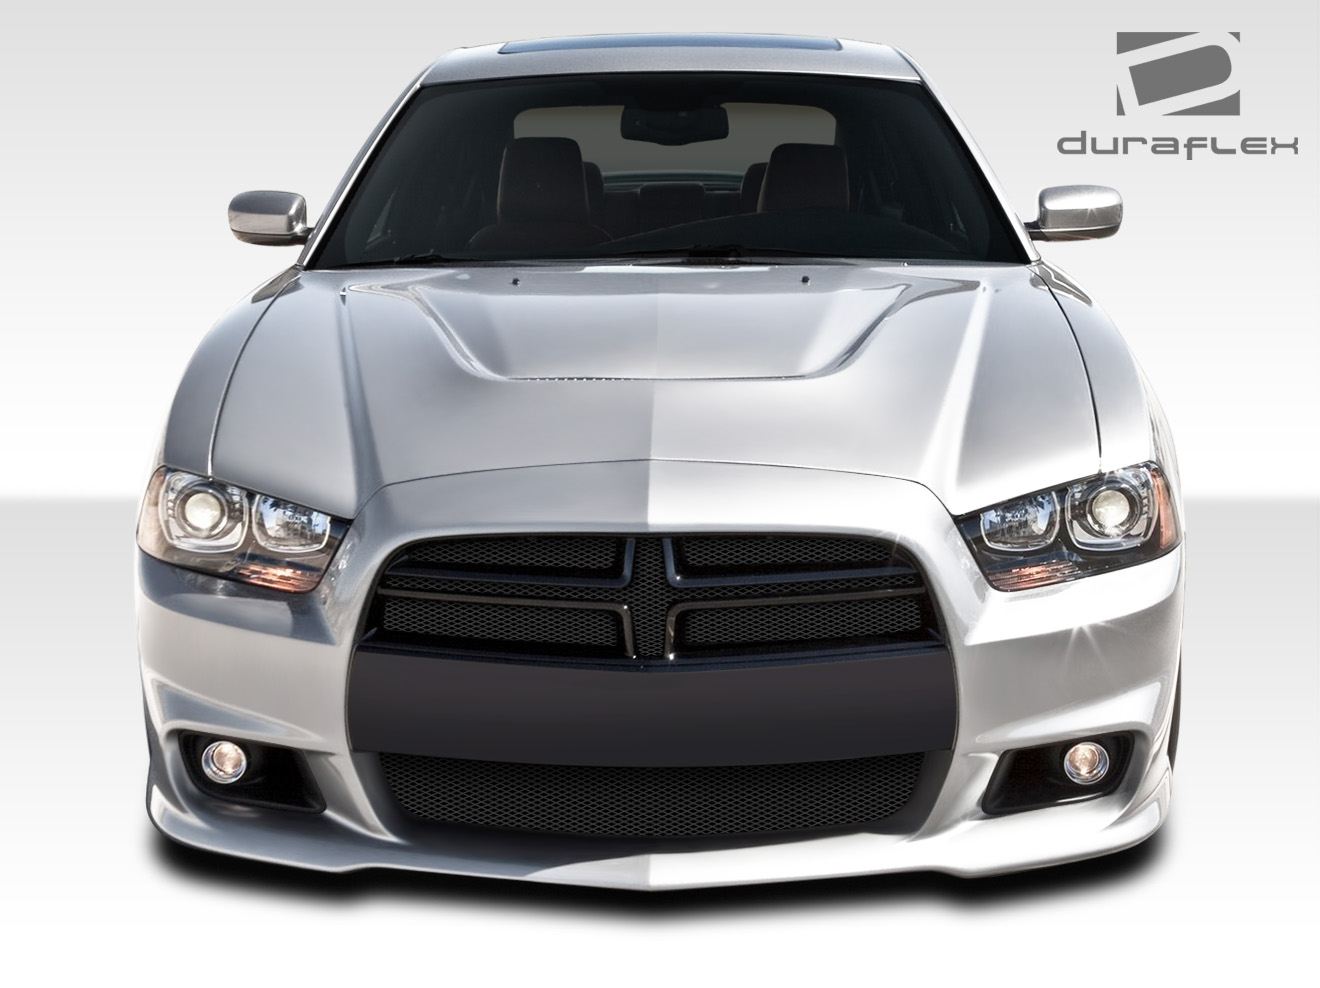 fit 2011 2014 charger duraflex srt look front bumper cover. Black Bedroom Furniture Sets. Home Design Ideas